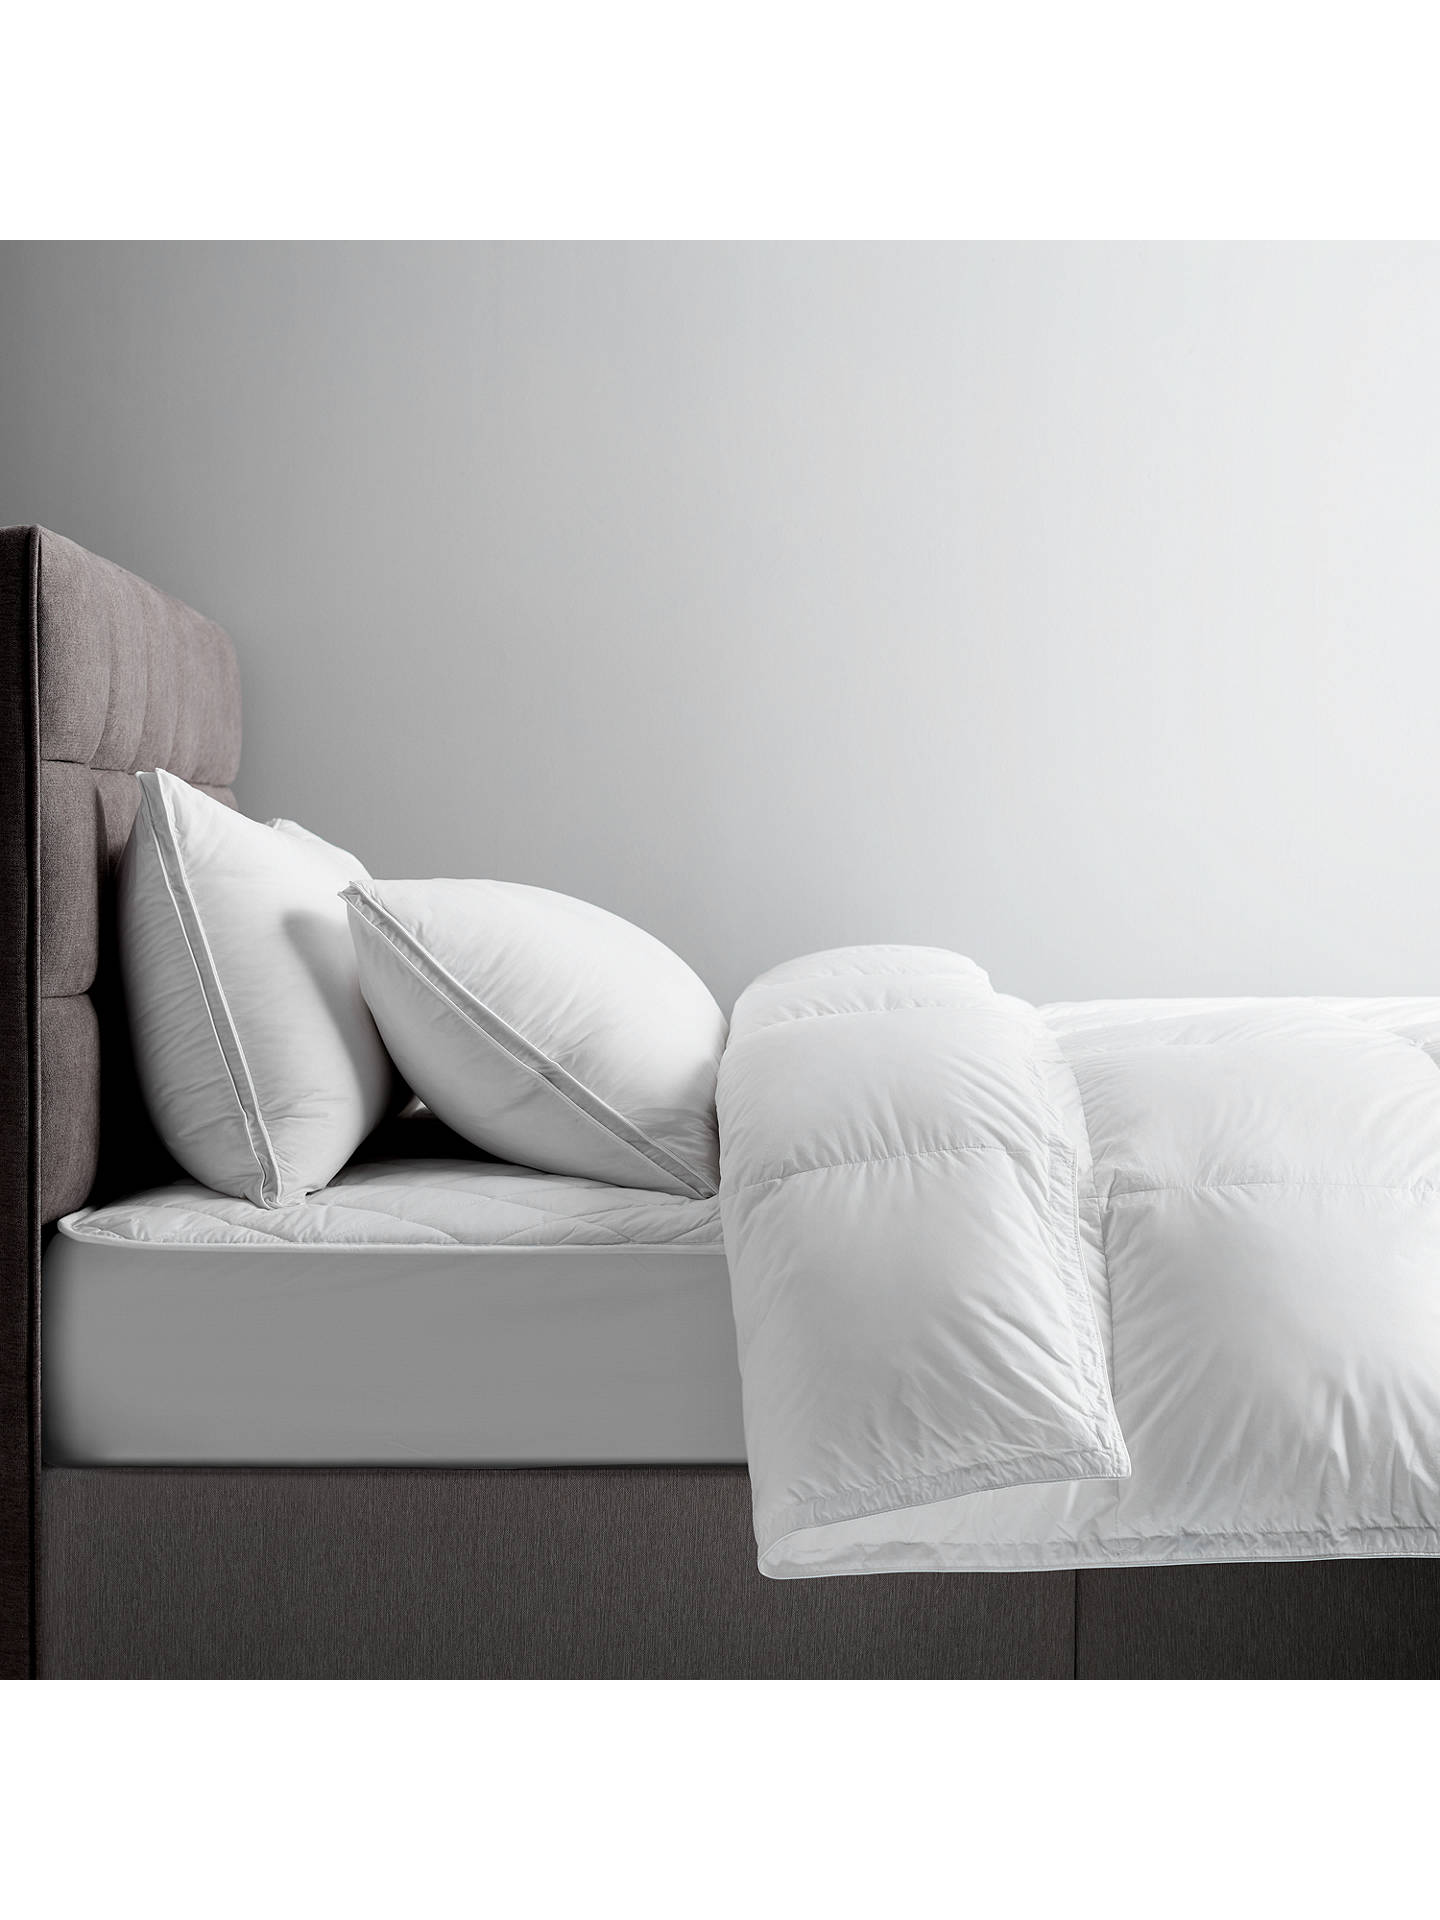 BuyJohn Lewis & Partners The Ultimate Collection British Goose Down Standard Pillow, Soft/Medium Online at johnlewis.com